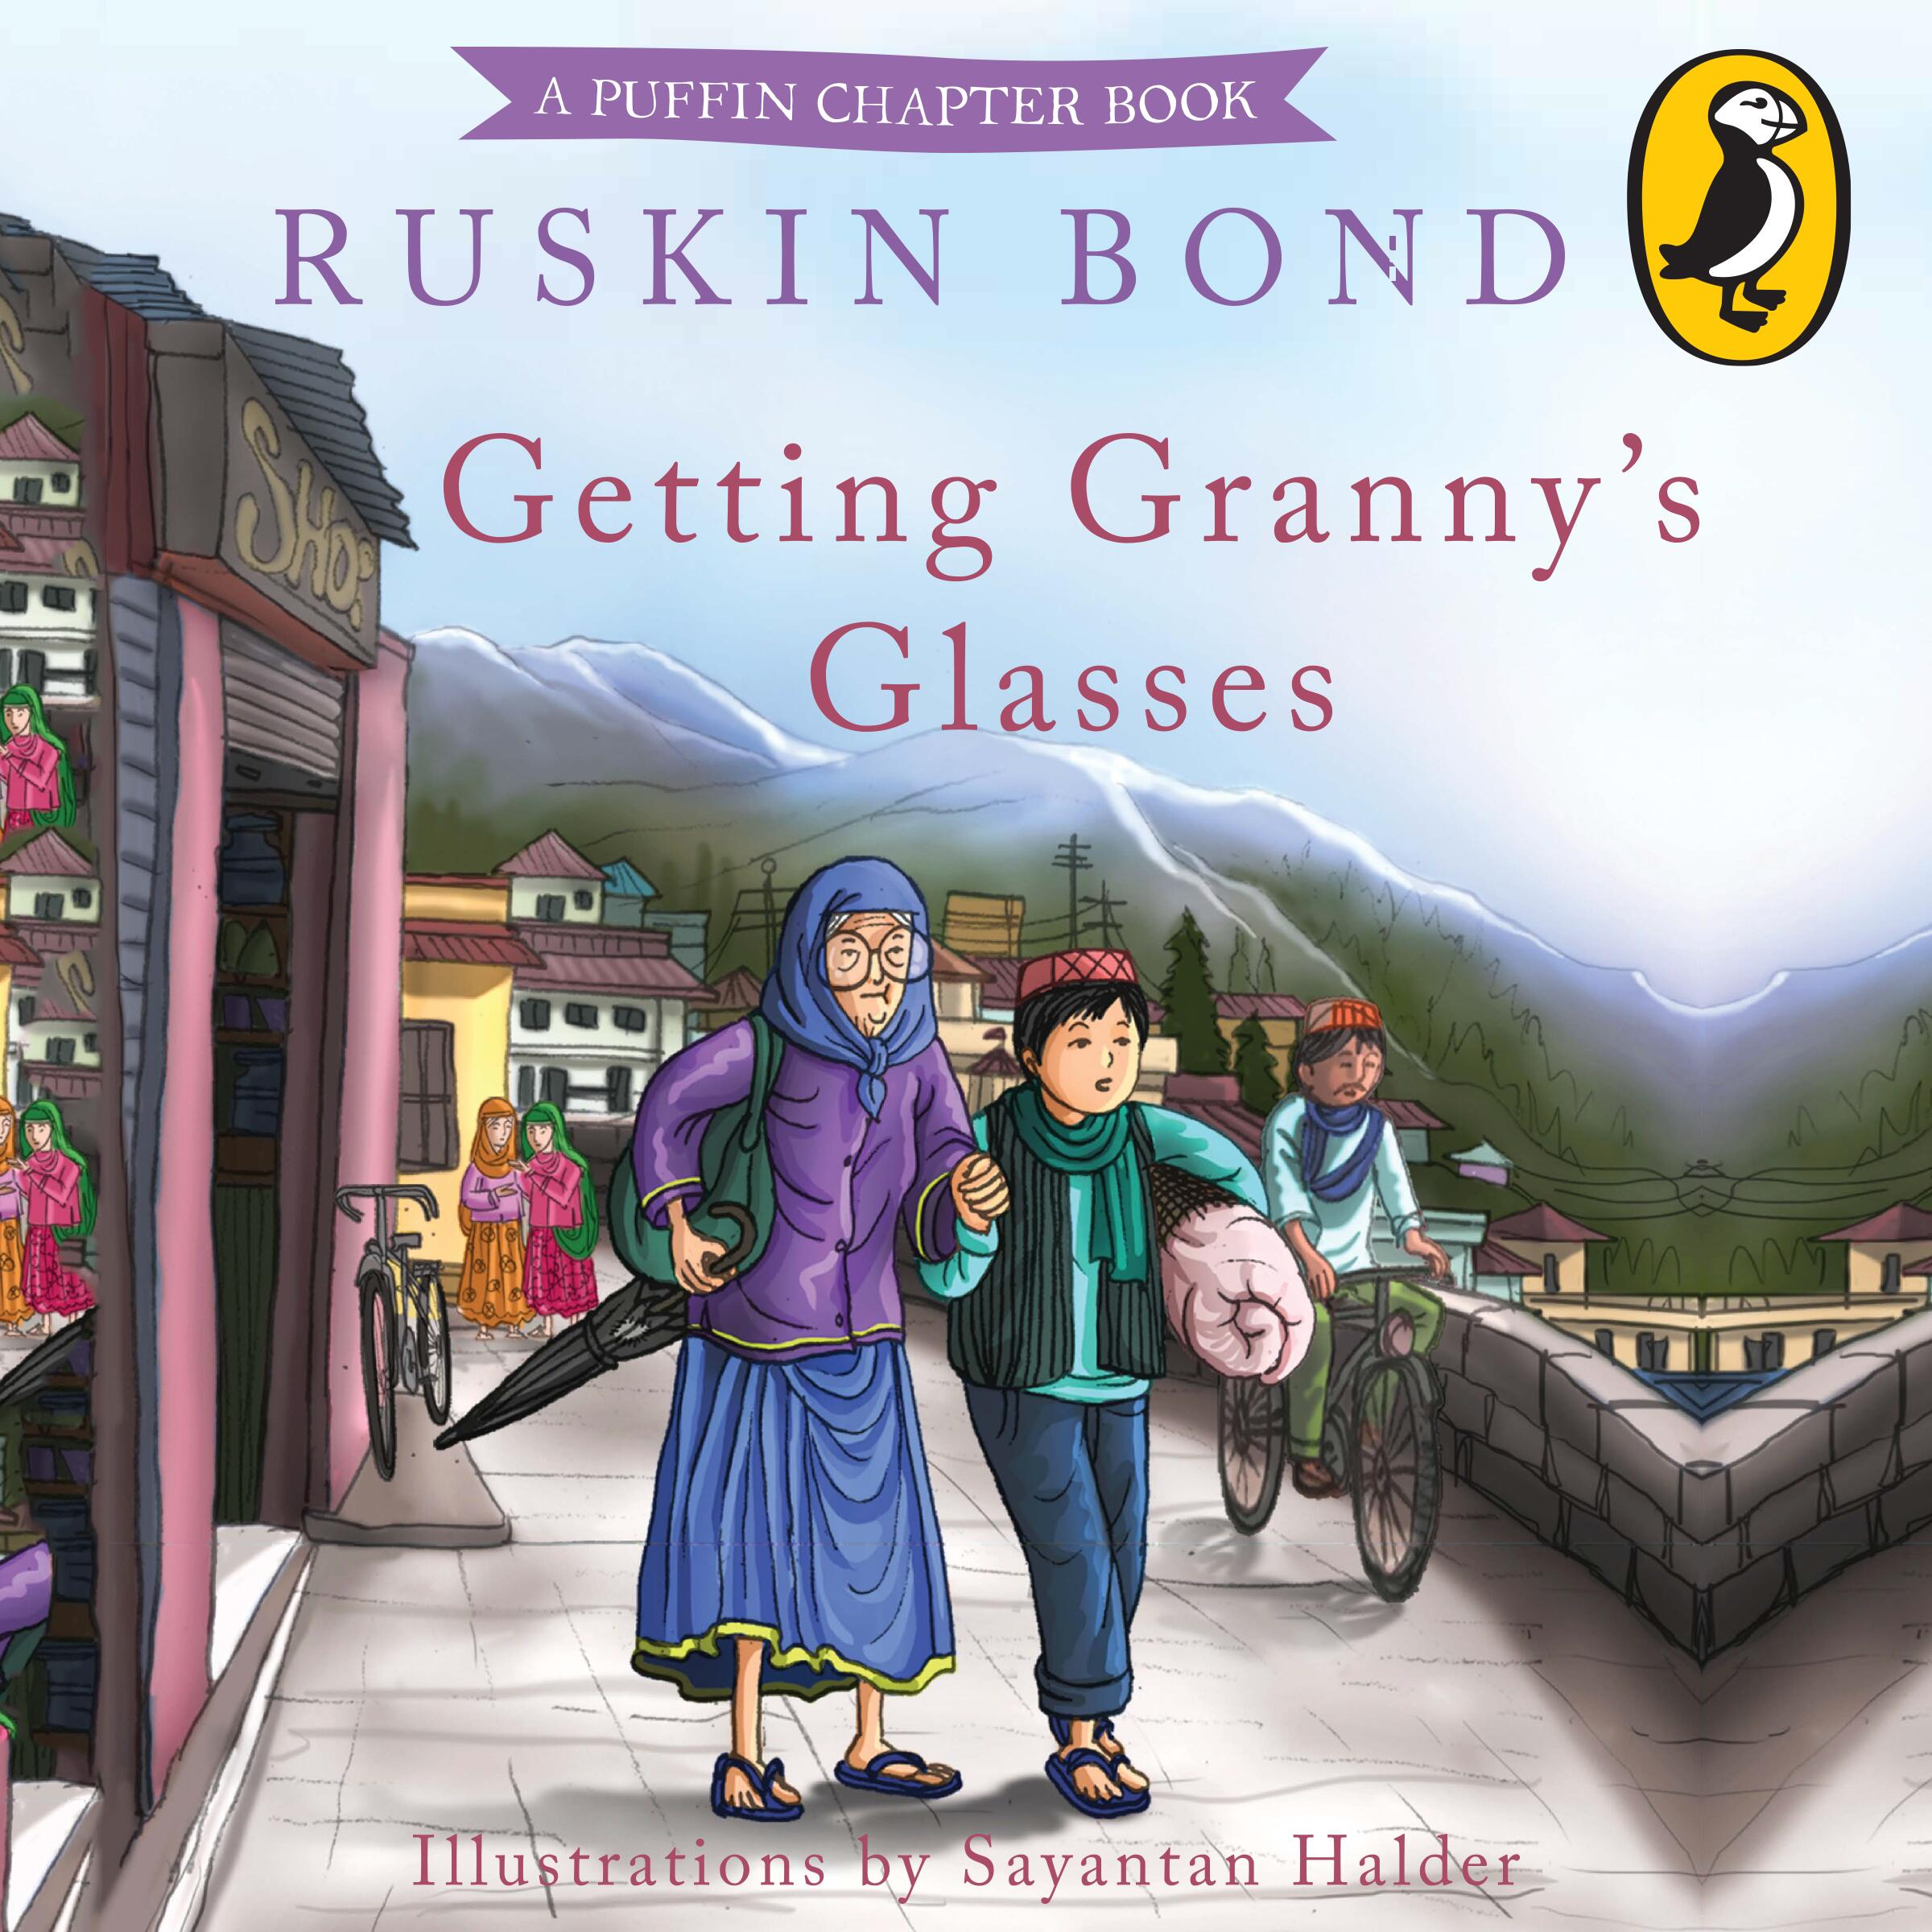 Getting Granny's Glasses